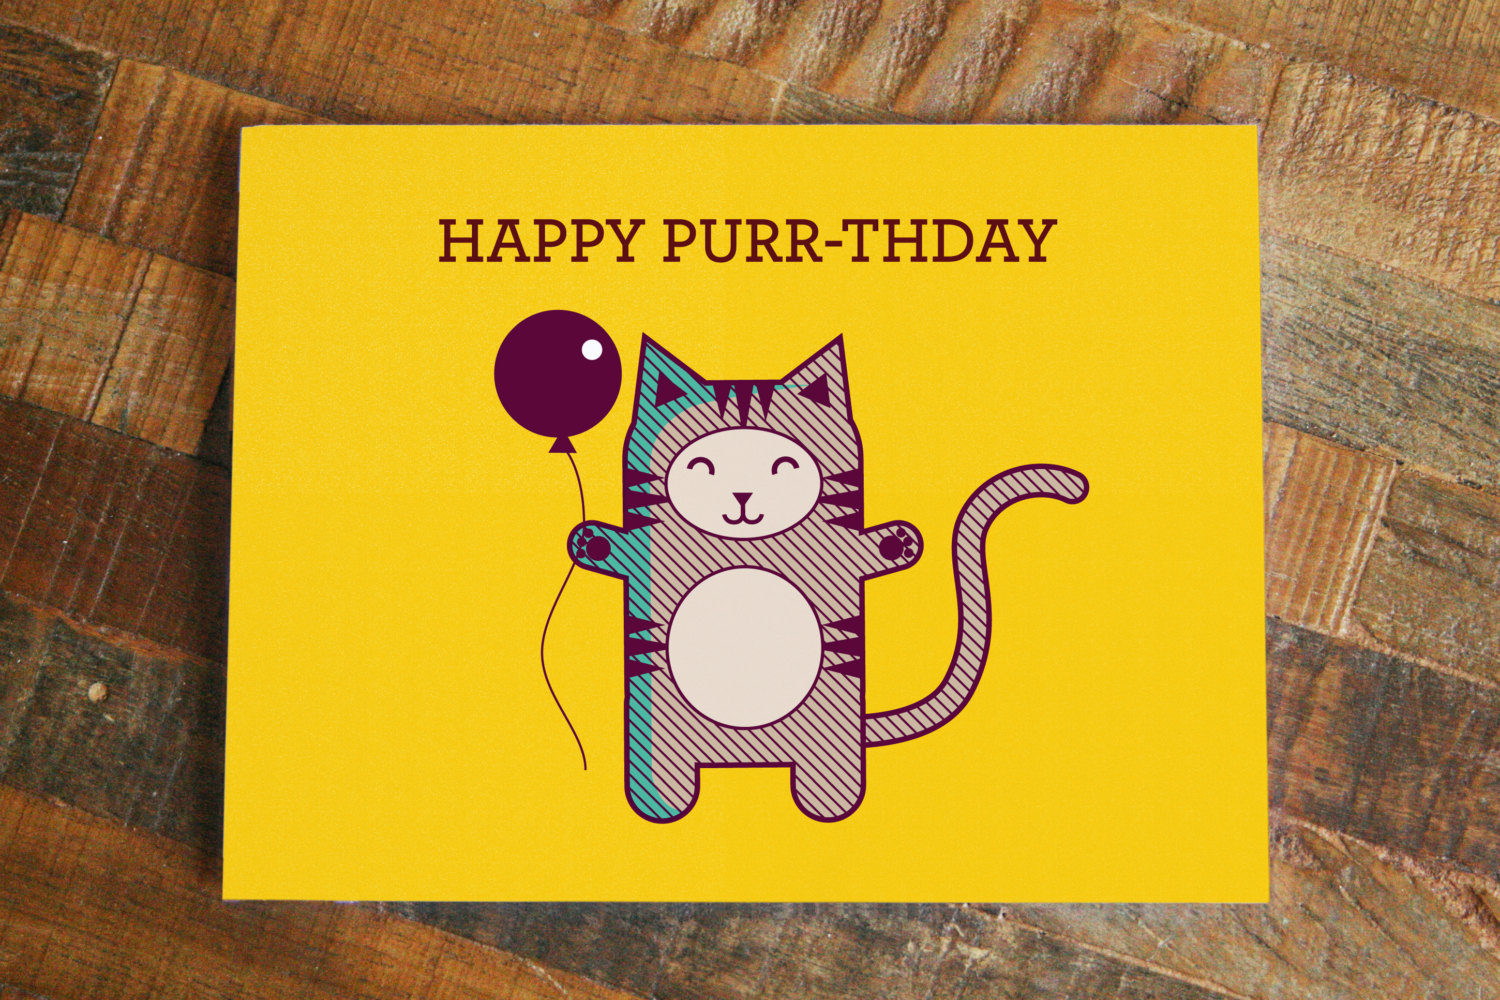 Cat pun birthday card happy purr thday funny card cute cat card il fullxfull609649047 k8jy original bookmarktalkfo Choice Image